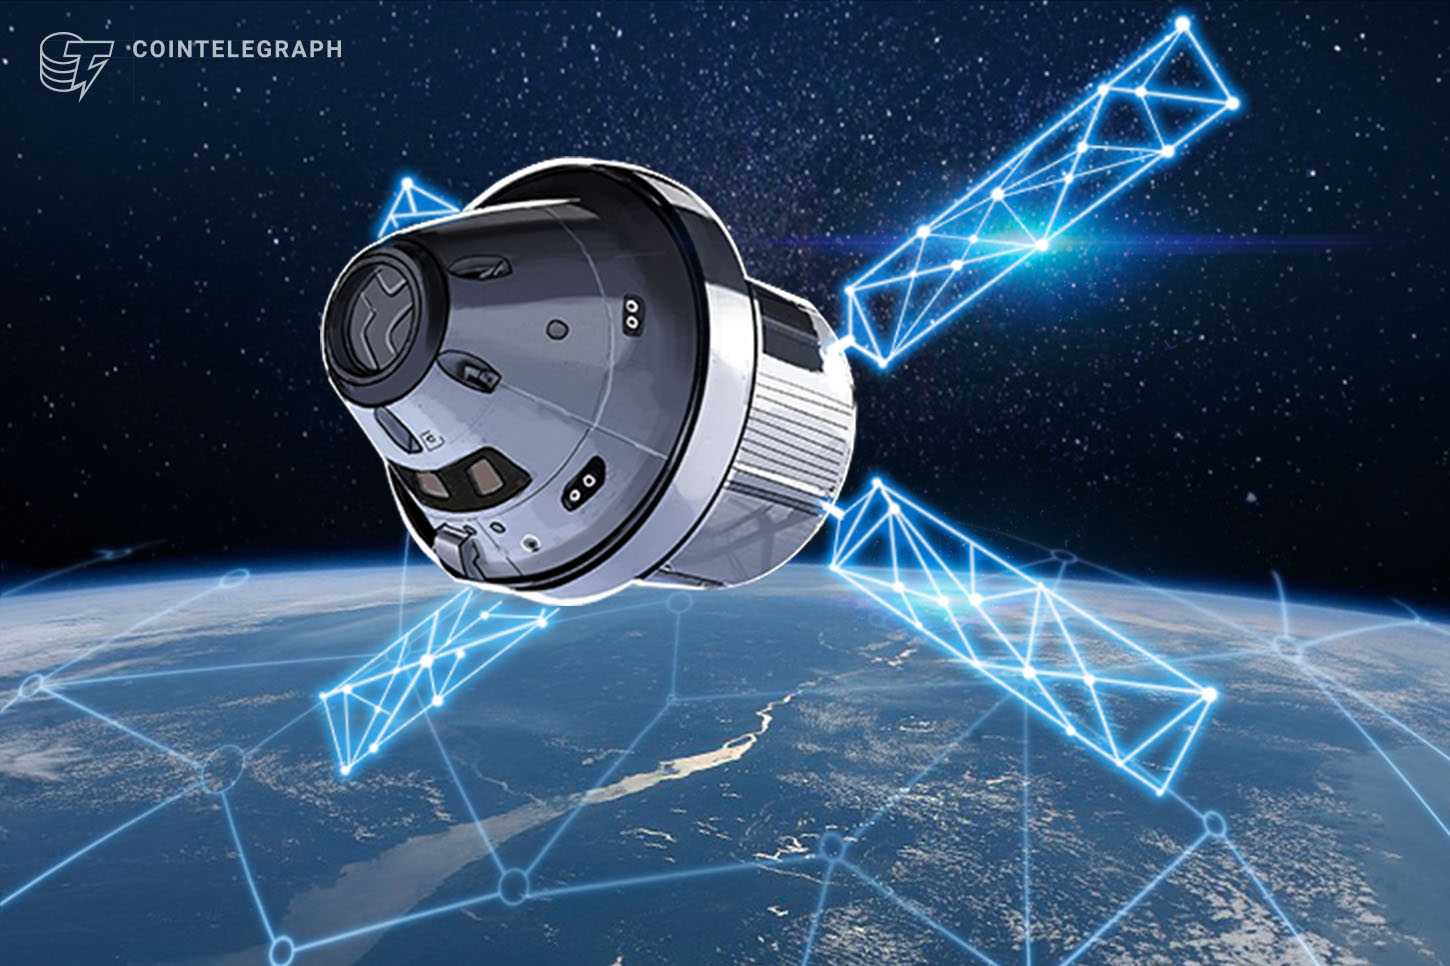 Bison Trails launches staking and node services for Cosmos